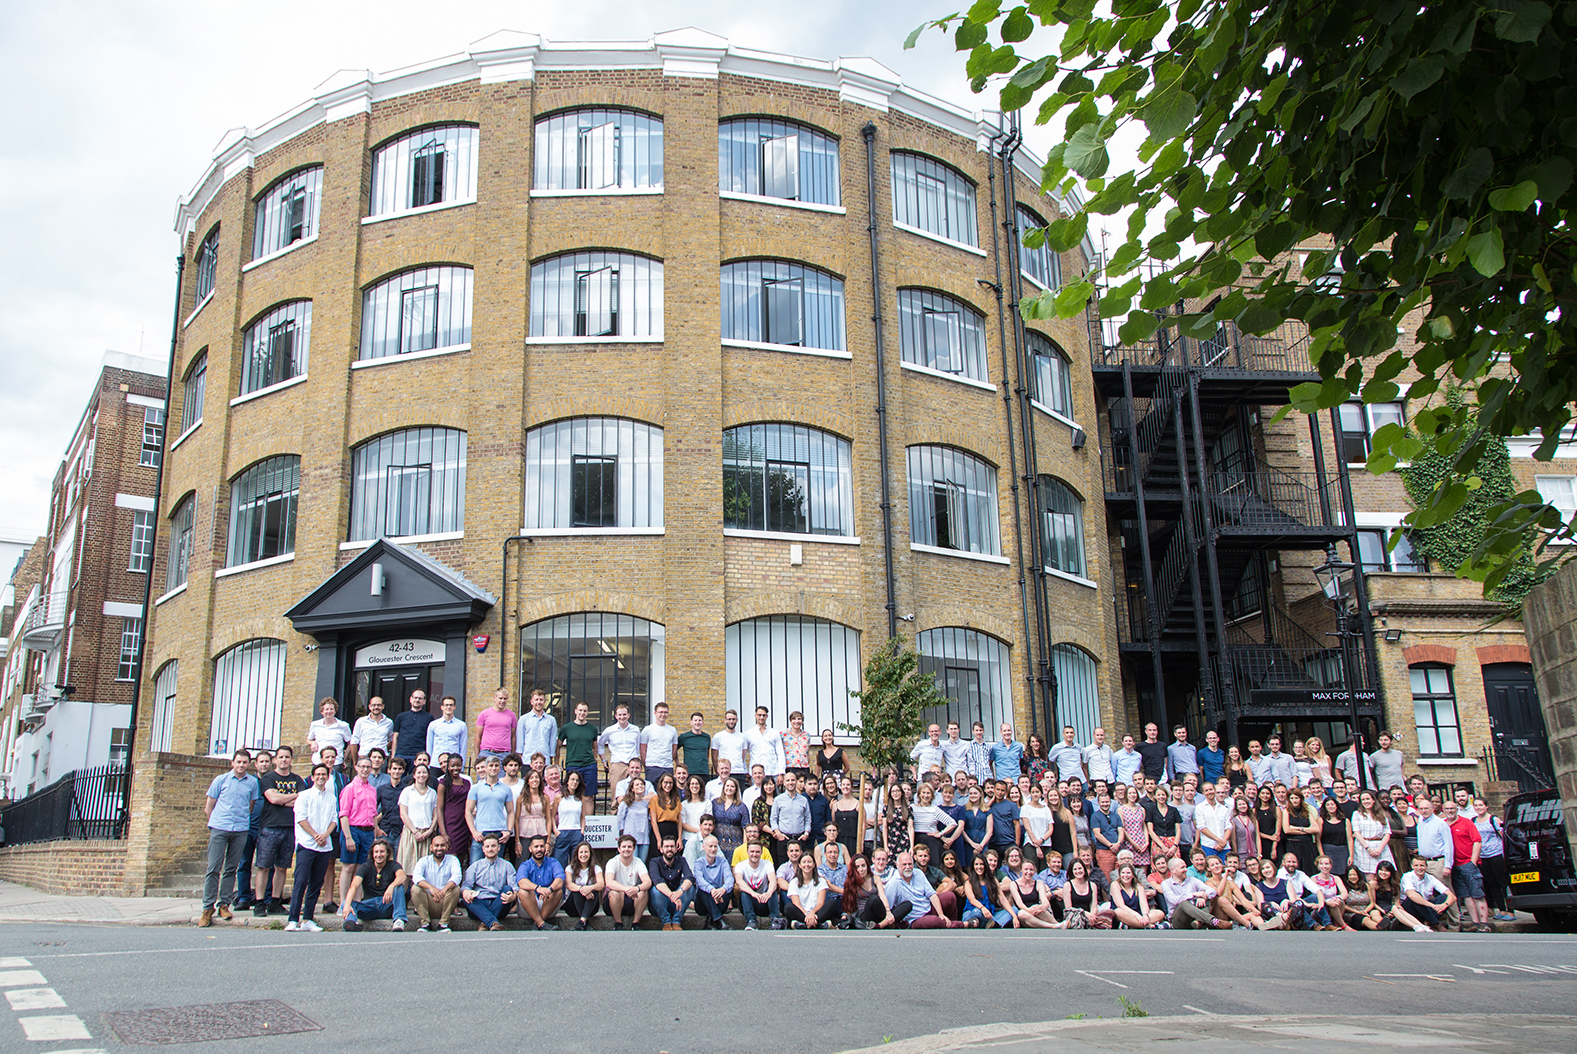 The Practice in front of the London office - we're shortlisted for Building Performance Consultancy of the Year 2021!